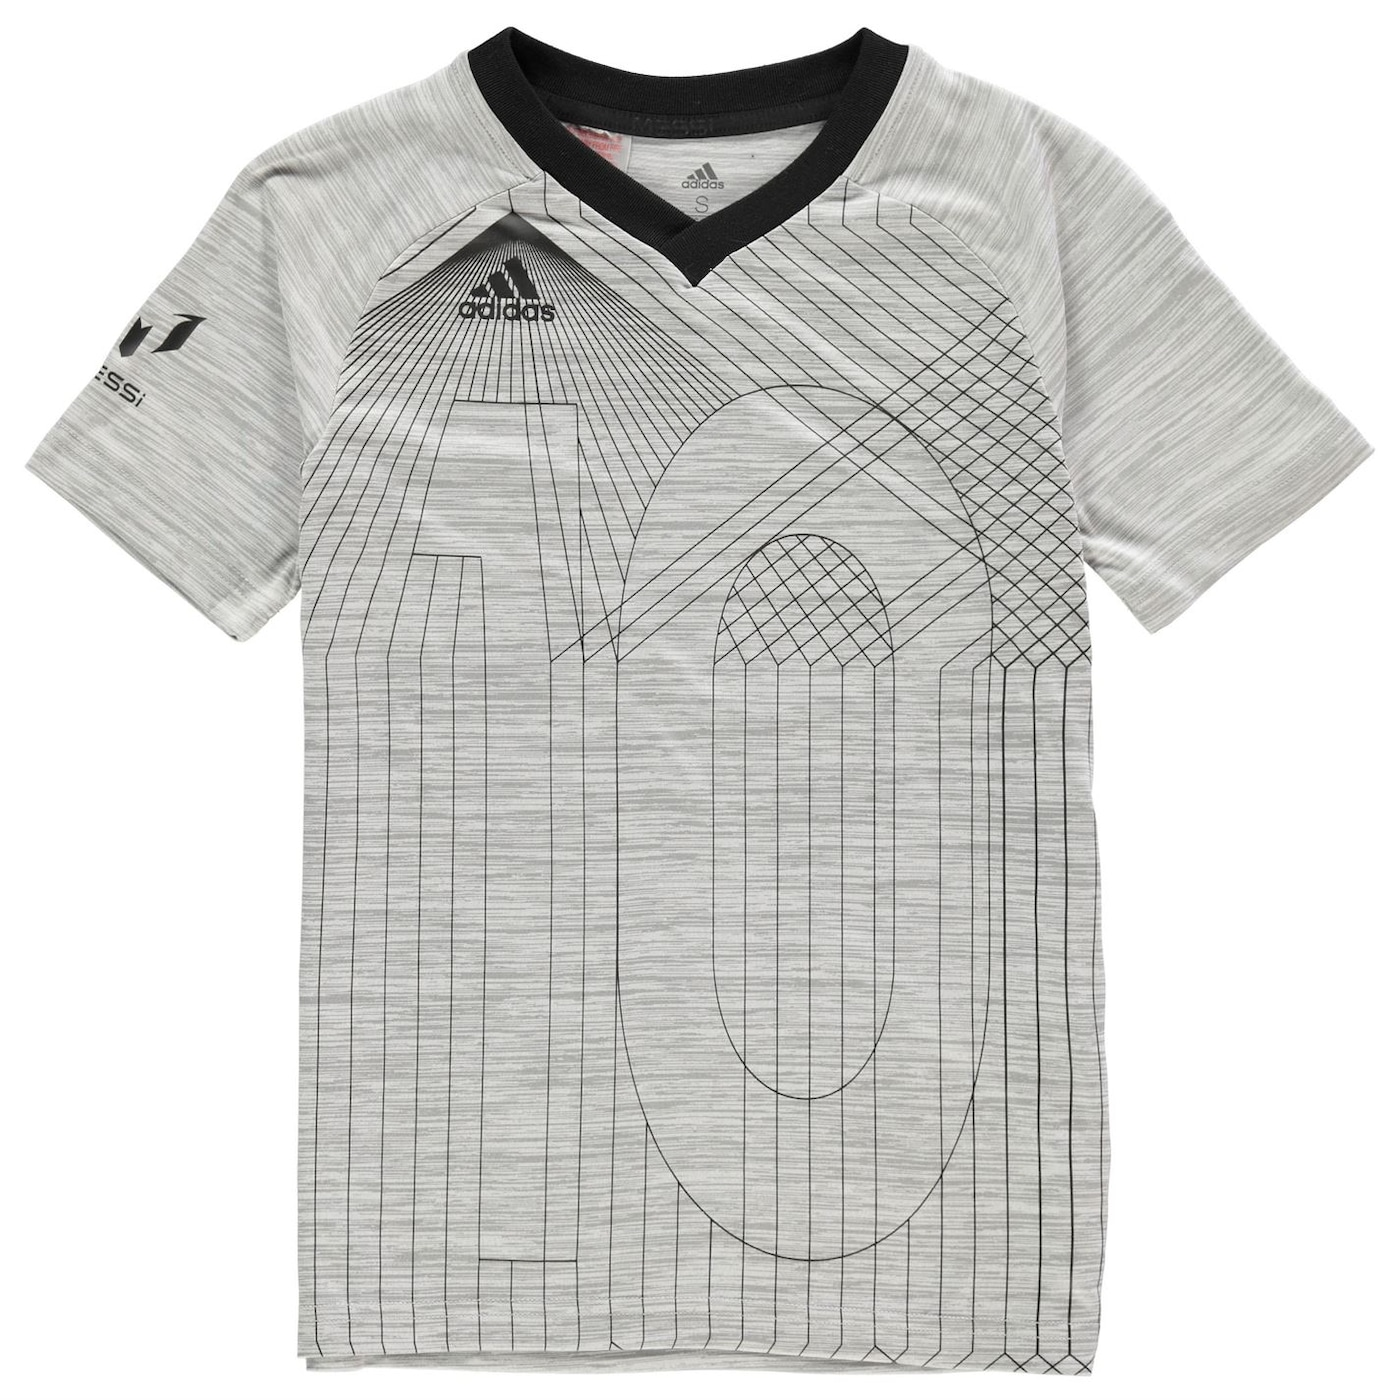 Adidas Messi Tee Junior Boys